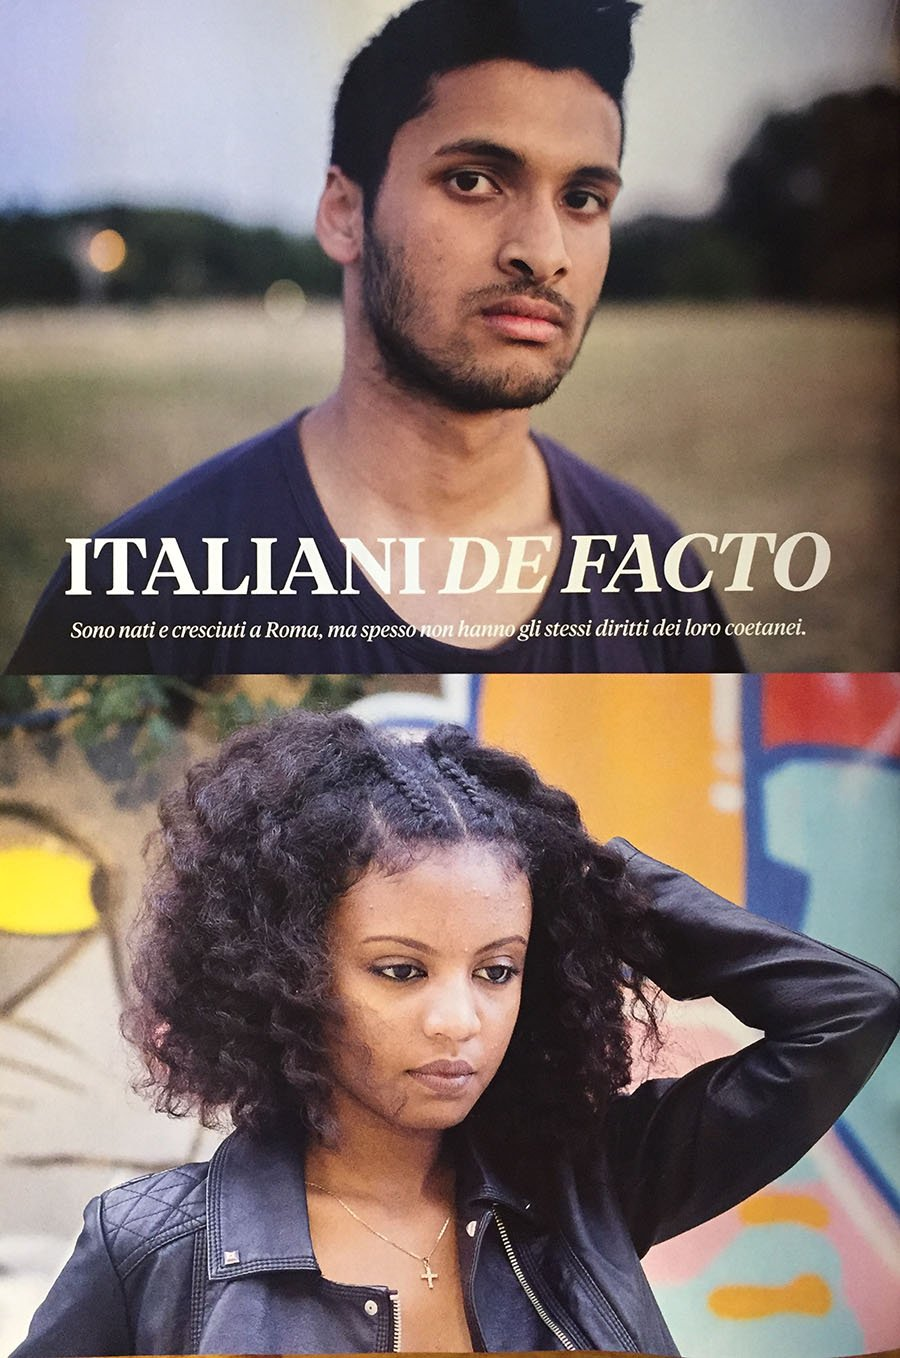 griot _mag _national _geographic -race issue razza razzismo racism